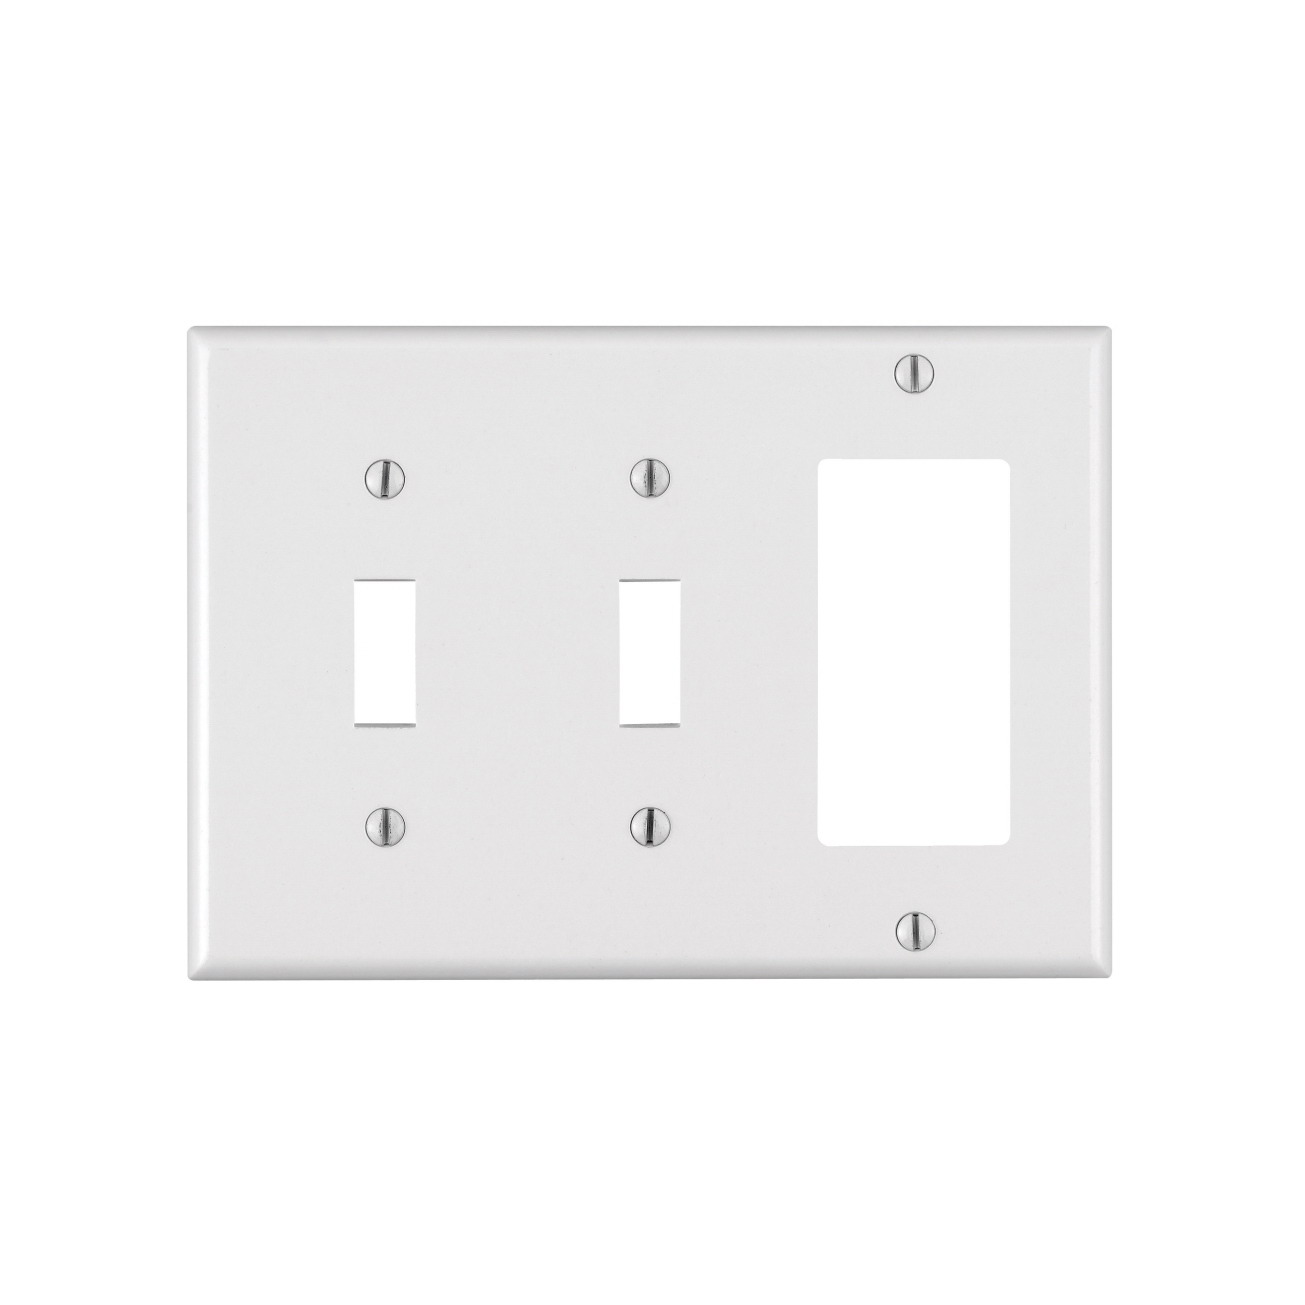 Leviton 005-80421-00W 2-Toggle 1-Decora/GFCI Standard Size Wall Plate, 3 Gang, 4.5 in L X 6.38 in W 0.22 in T, White